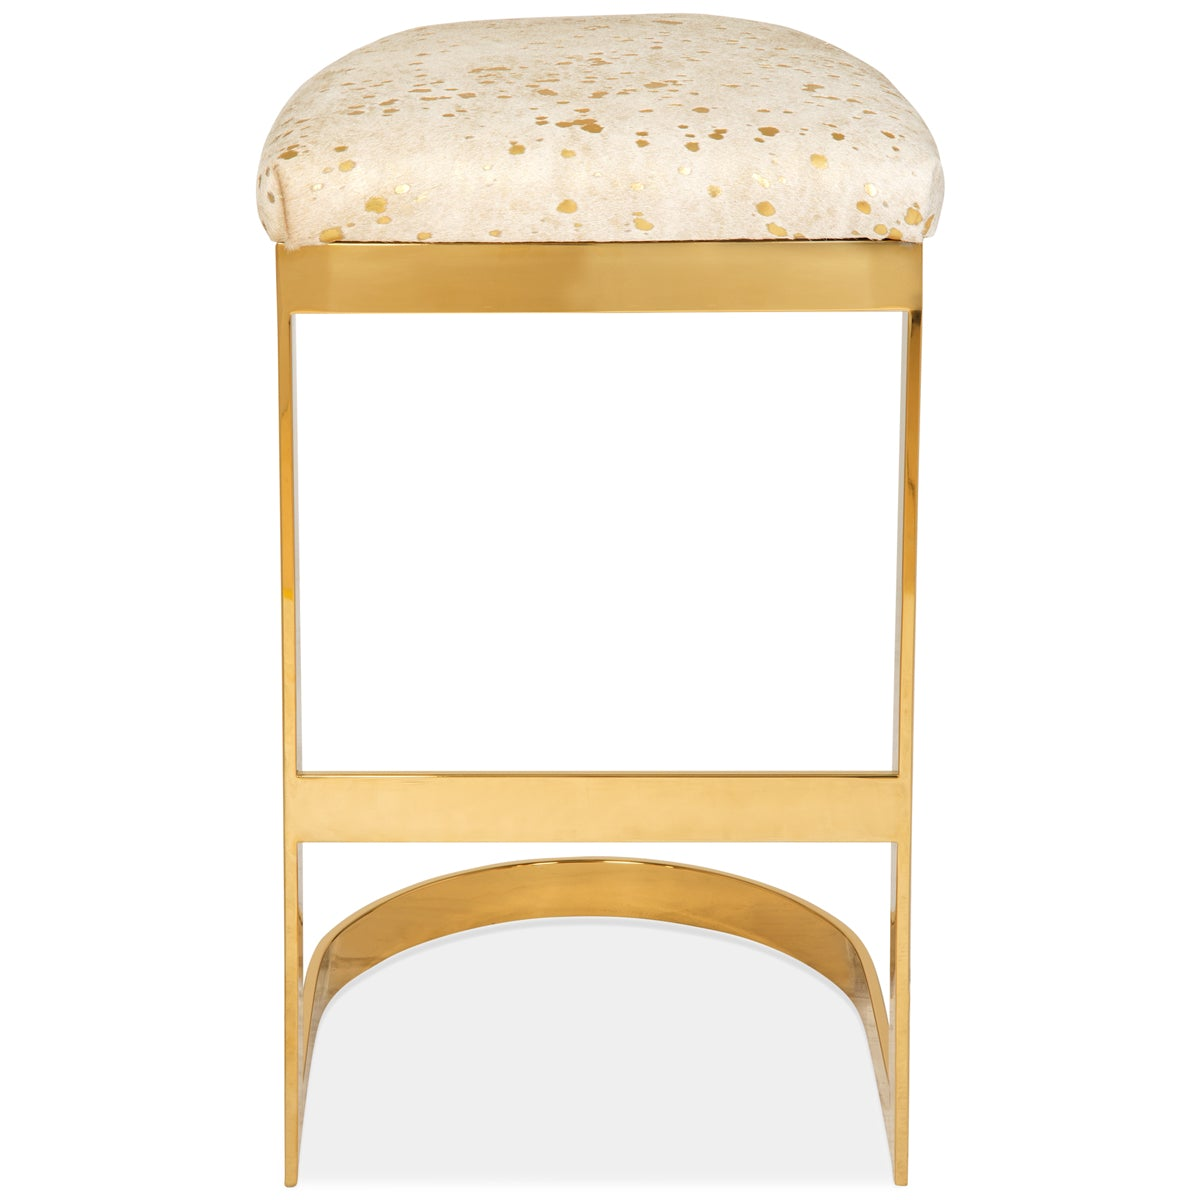 Ibiza Backless Bar and Counter Stool in Cowhide - ModShop1.com